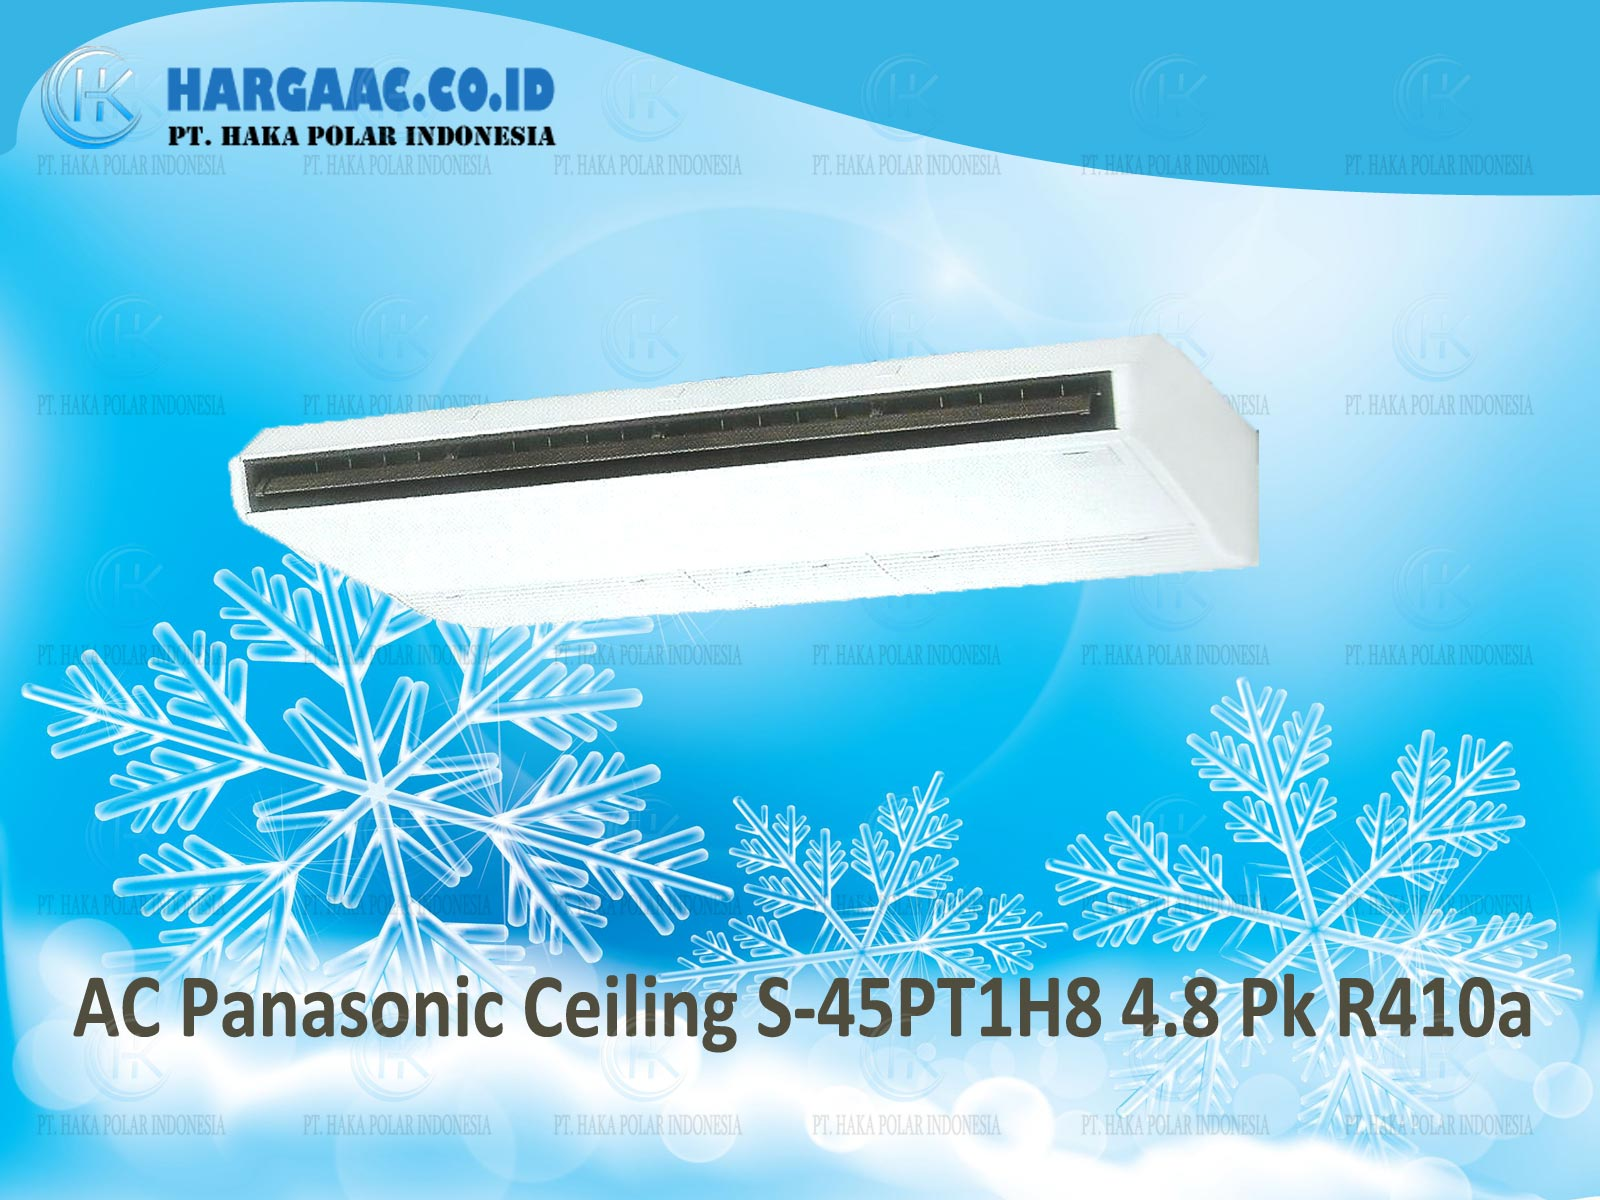 AC Panasonic Ceiling S-45PT1H8 3 Phase 4.8 PK R410a